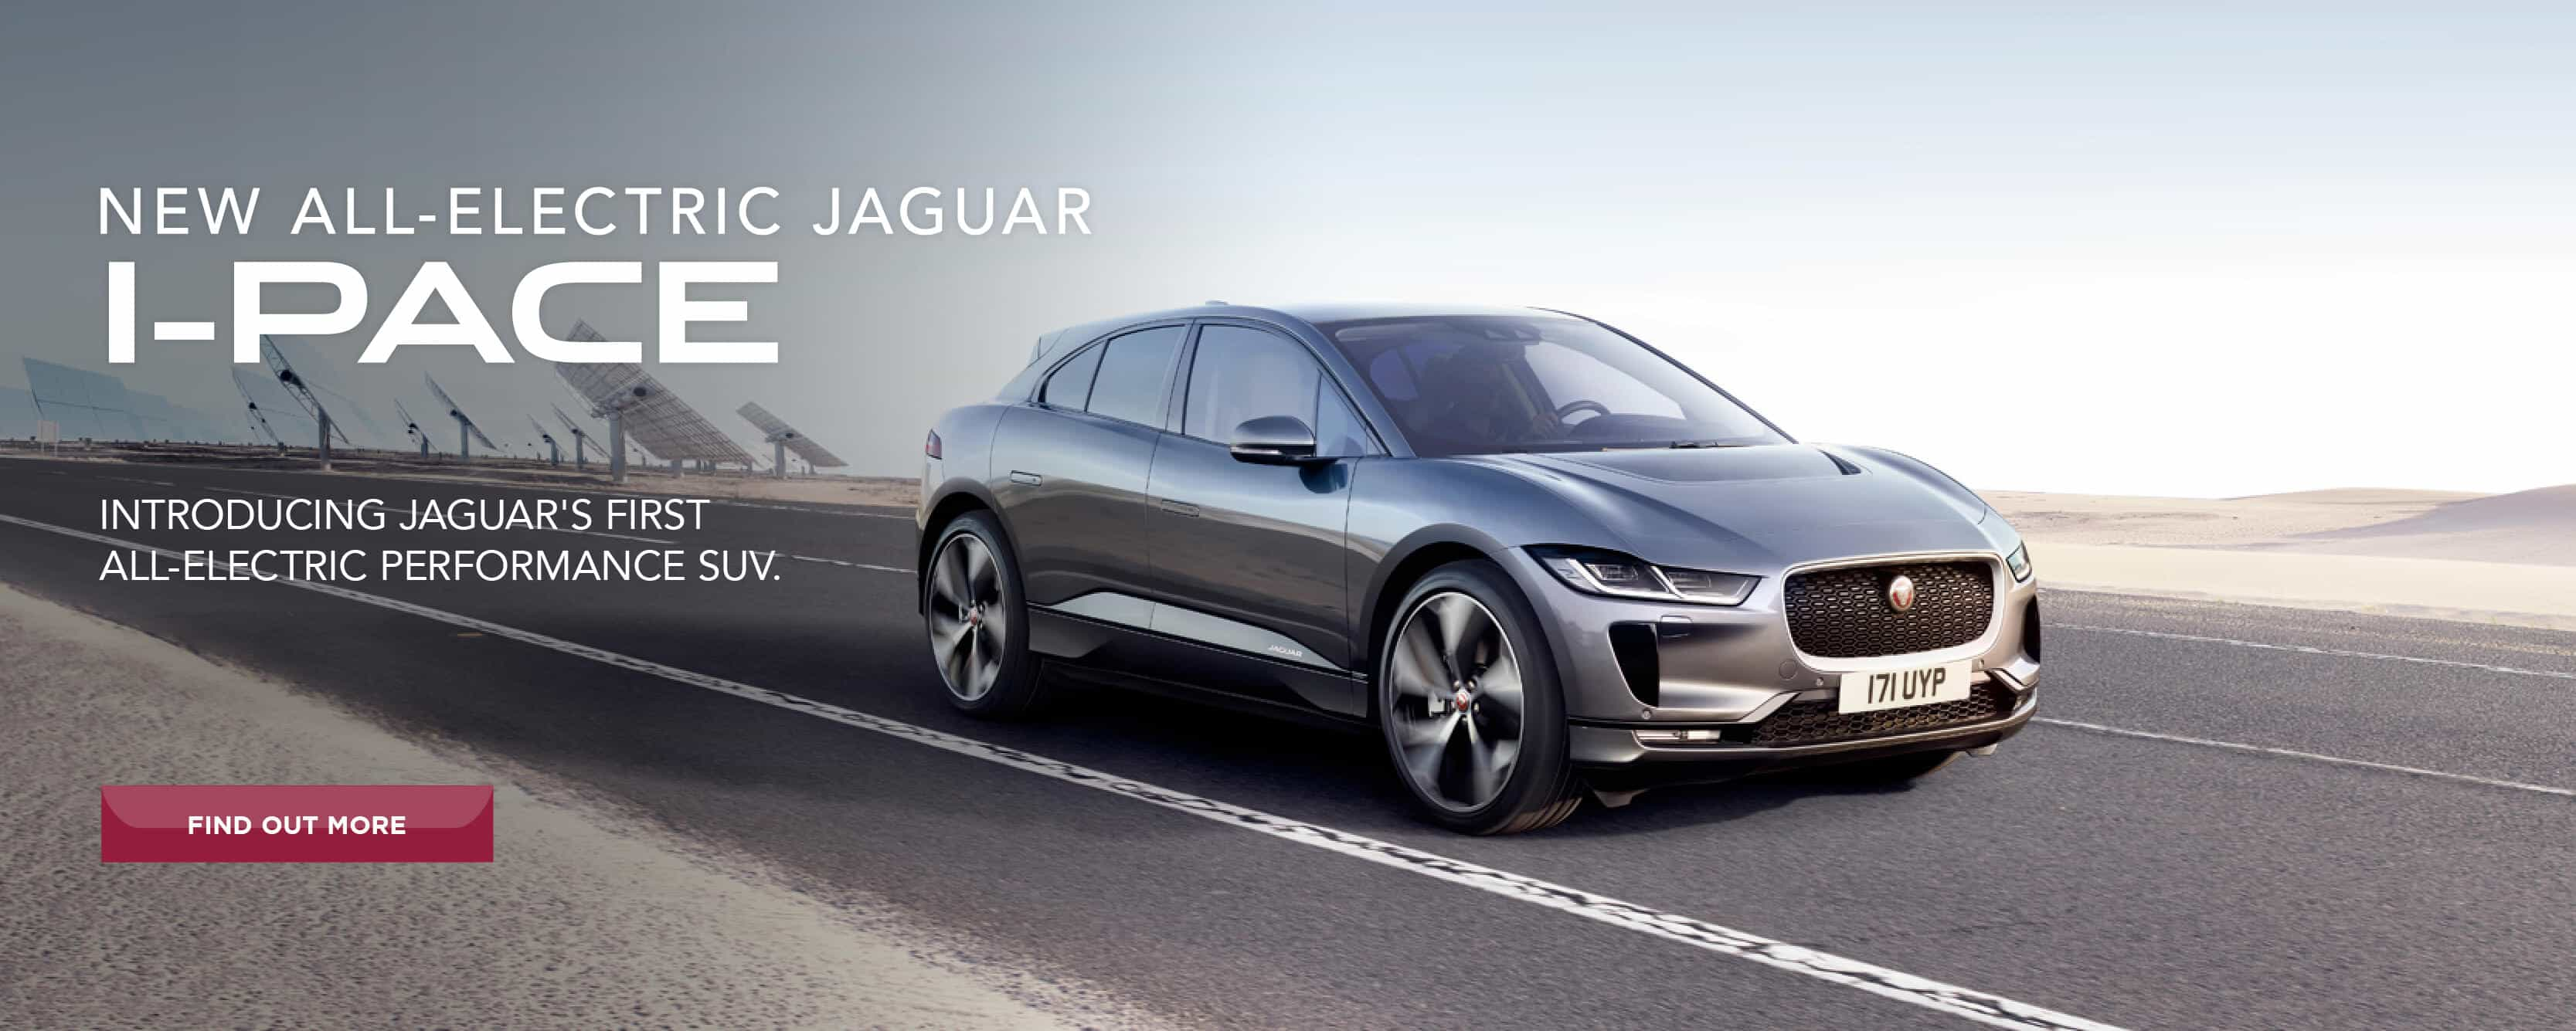 All New Jaguar I-Pace